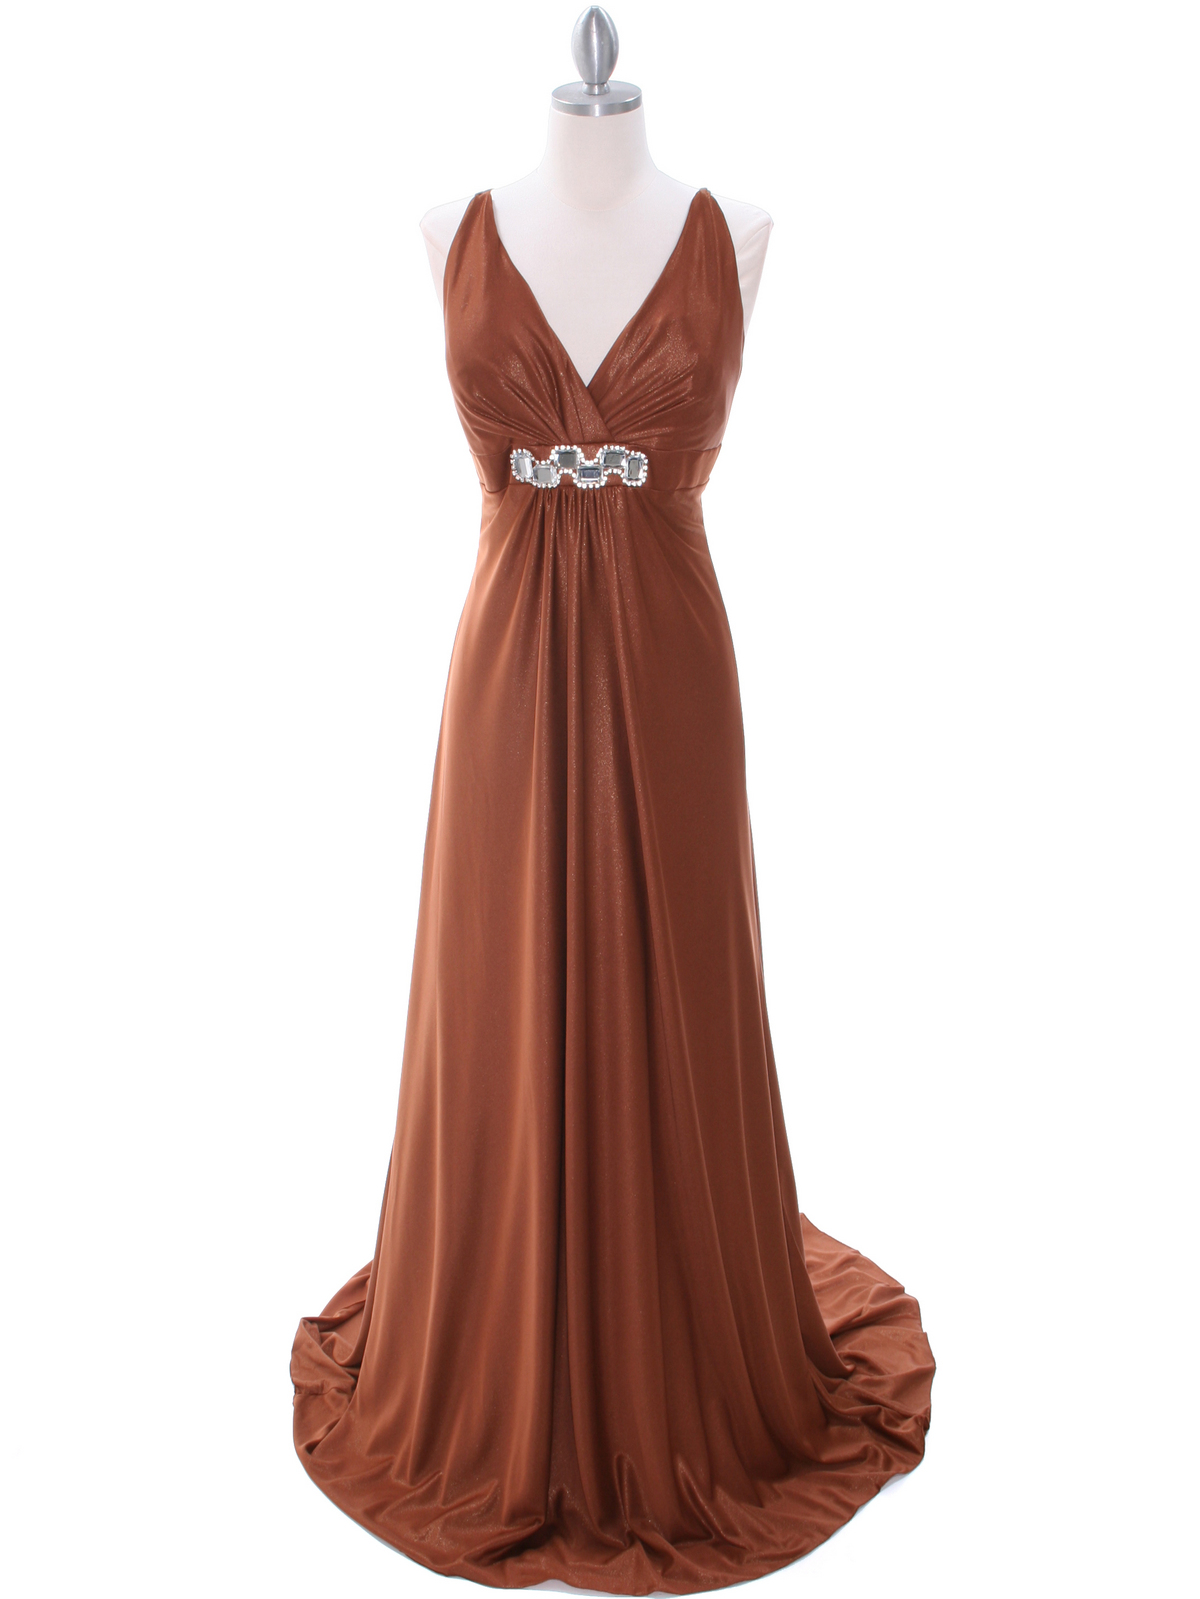 2148 Brown Glitter Bridesmaid Dress - Front Image